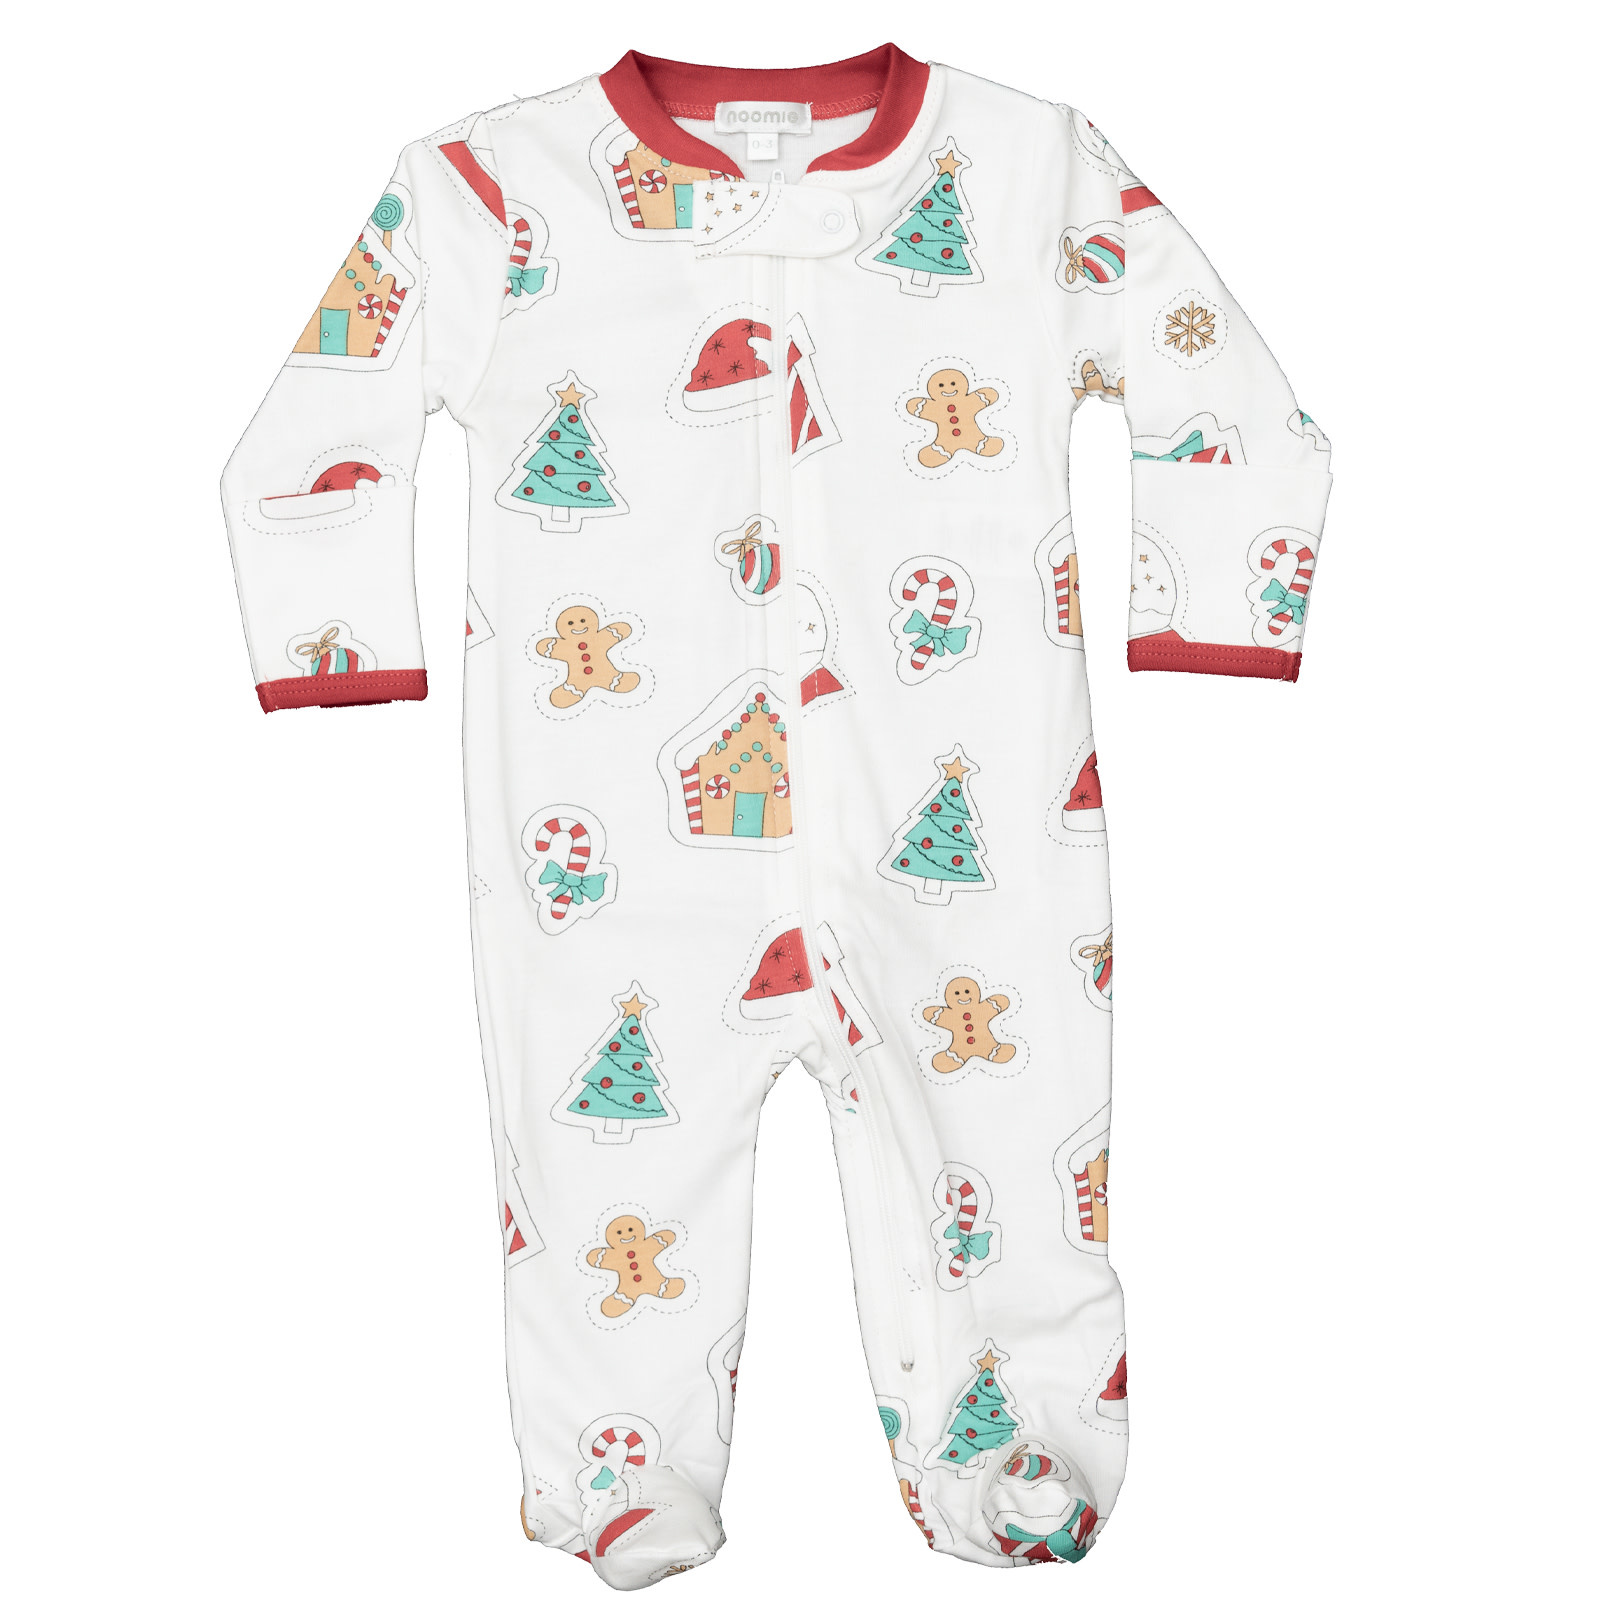 Noomie Holiday Patches Zipper Footie